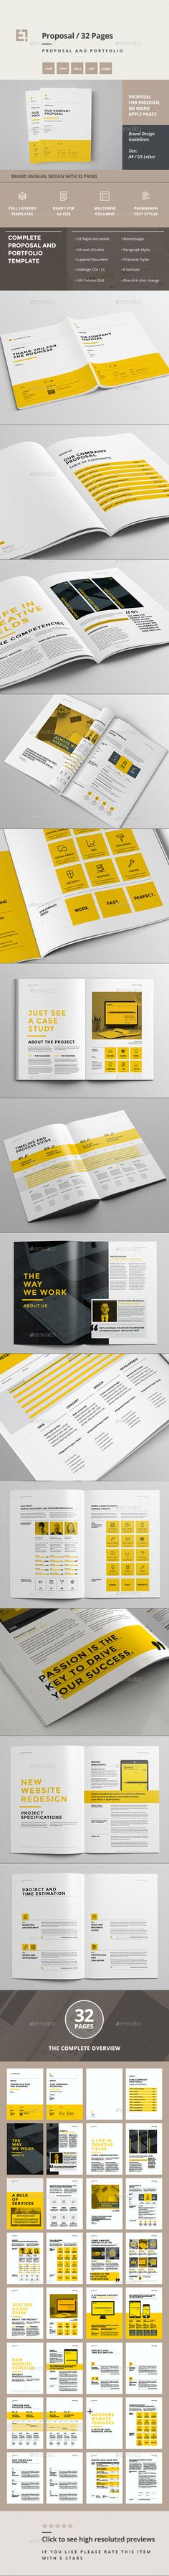 abstract brochure catalog indesign template booklet brochuredesign graphic design. Black Bedroom Furniture Sets. Home Design Ideas